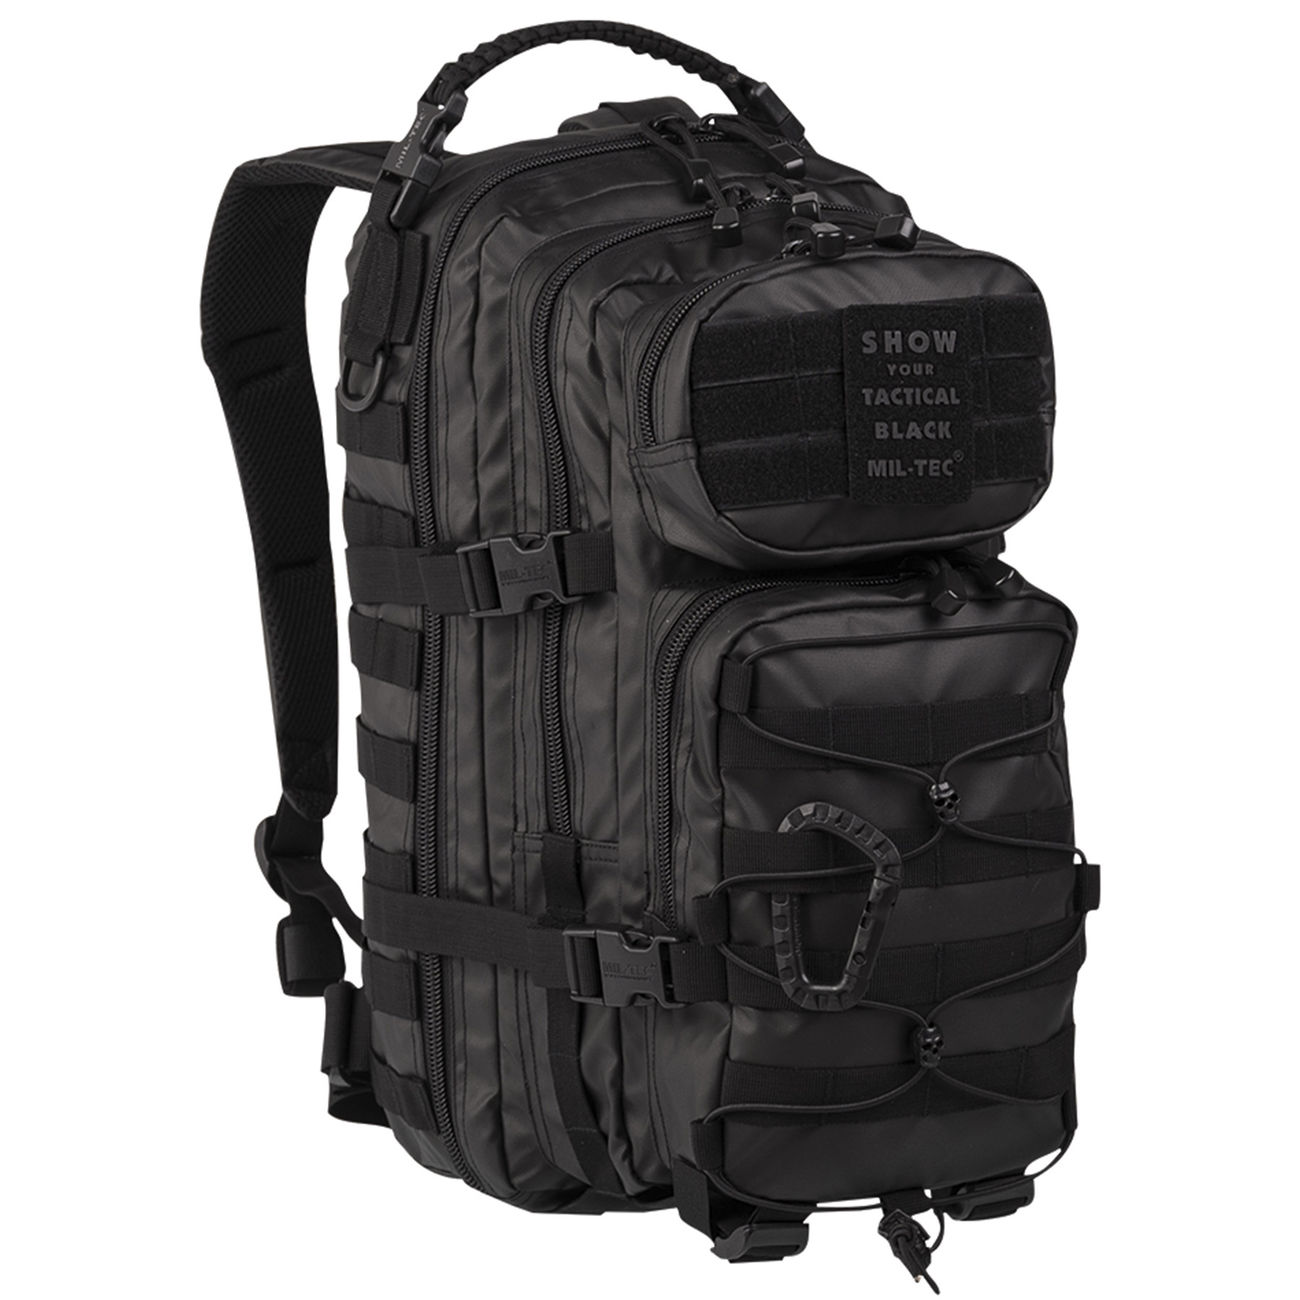 946776e6c3b97 Mil-Tec Rucksack US Assault Pack small 20 Liter tactical black ...